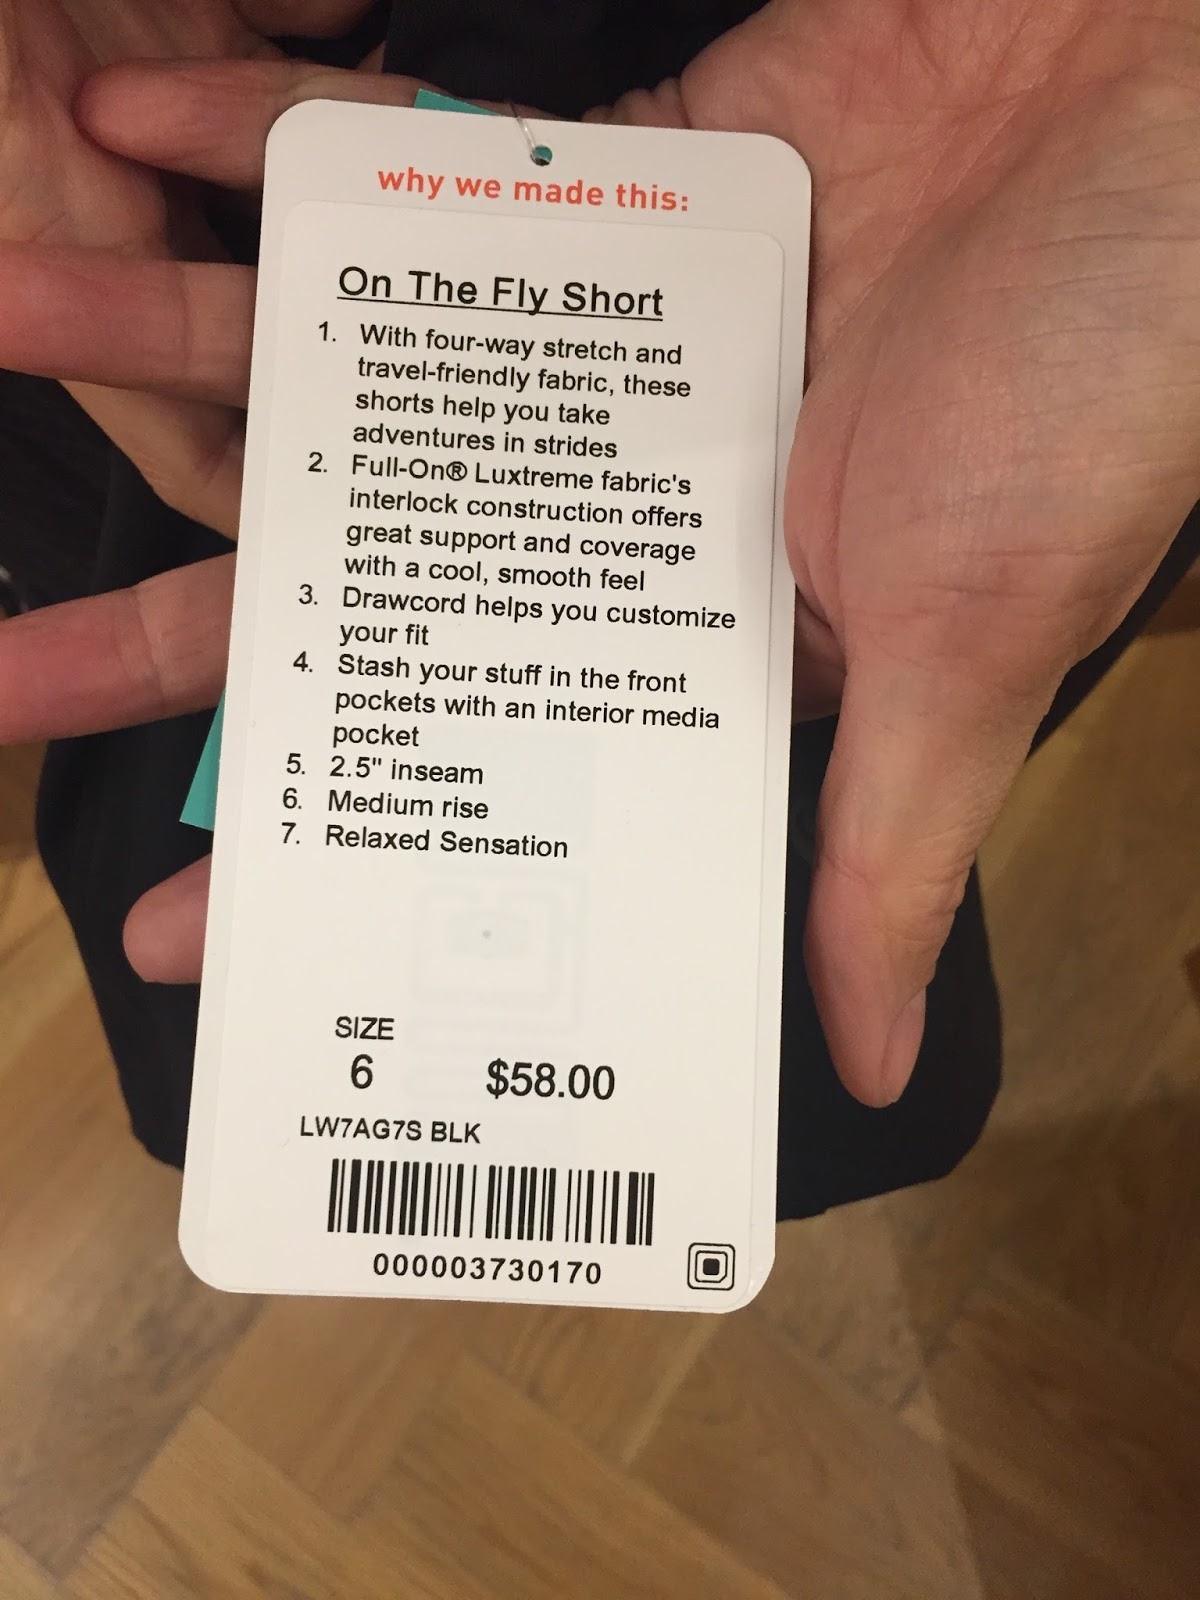 https://api.shopstyle.com/action/apiVisitRetailer?url=https%3A%2F%2Fshop.lululemon.com%2Fp%2Fwomen-shorts%2FOn-The-Fly-Short%2F_%2Fprod8430791%3Frcnt%3D5%26N%3D7yv%26cnt%3D25%26color%3DLW7AGES_029270&site=www.shopstyle.ca&pid=uid6784-25288972-7